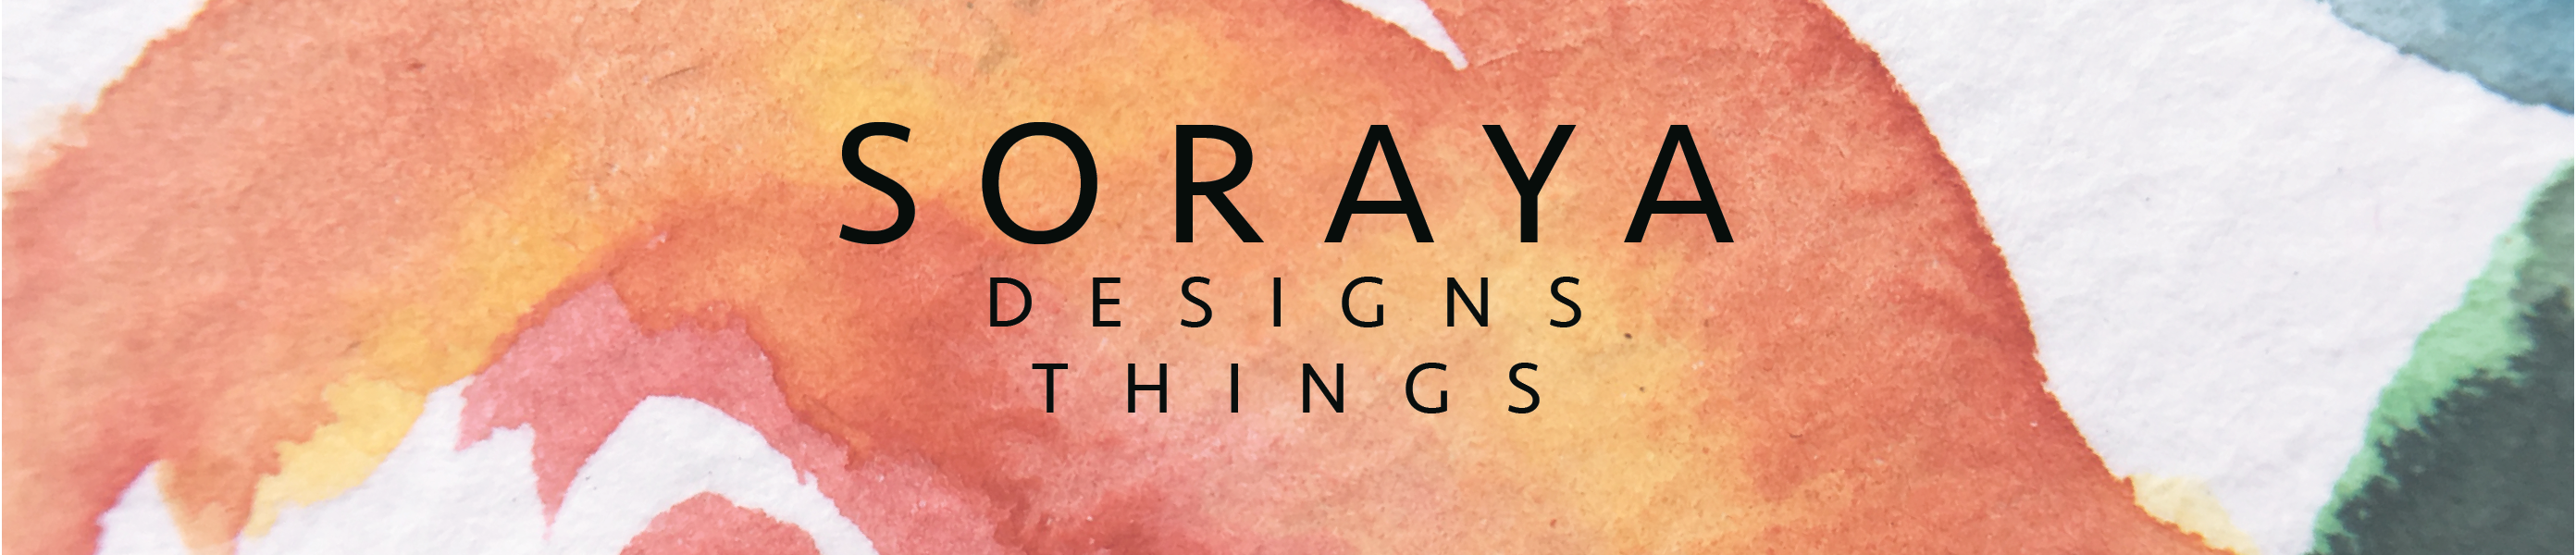 Soraya Designs Things